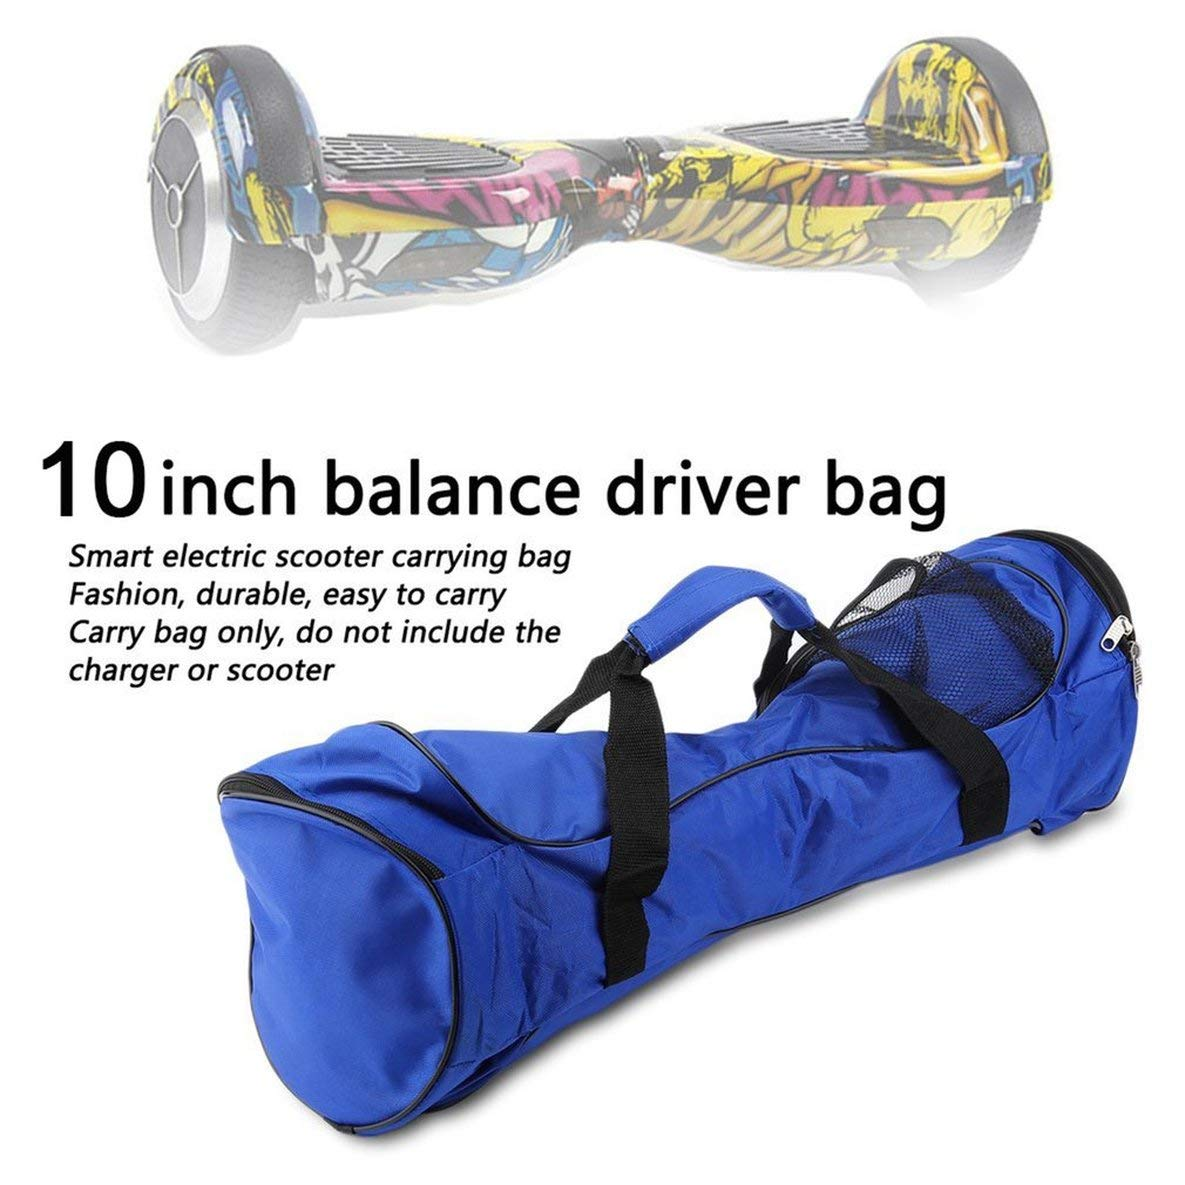 Noradtjcca 10inch Two Wheel Self Balancing Electric Scooter Portable Size Oxford Cloth Hoverboard Bag Handbag Waterproof Storage Bag